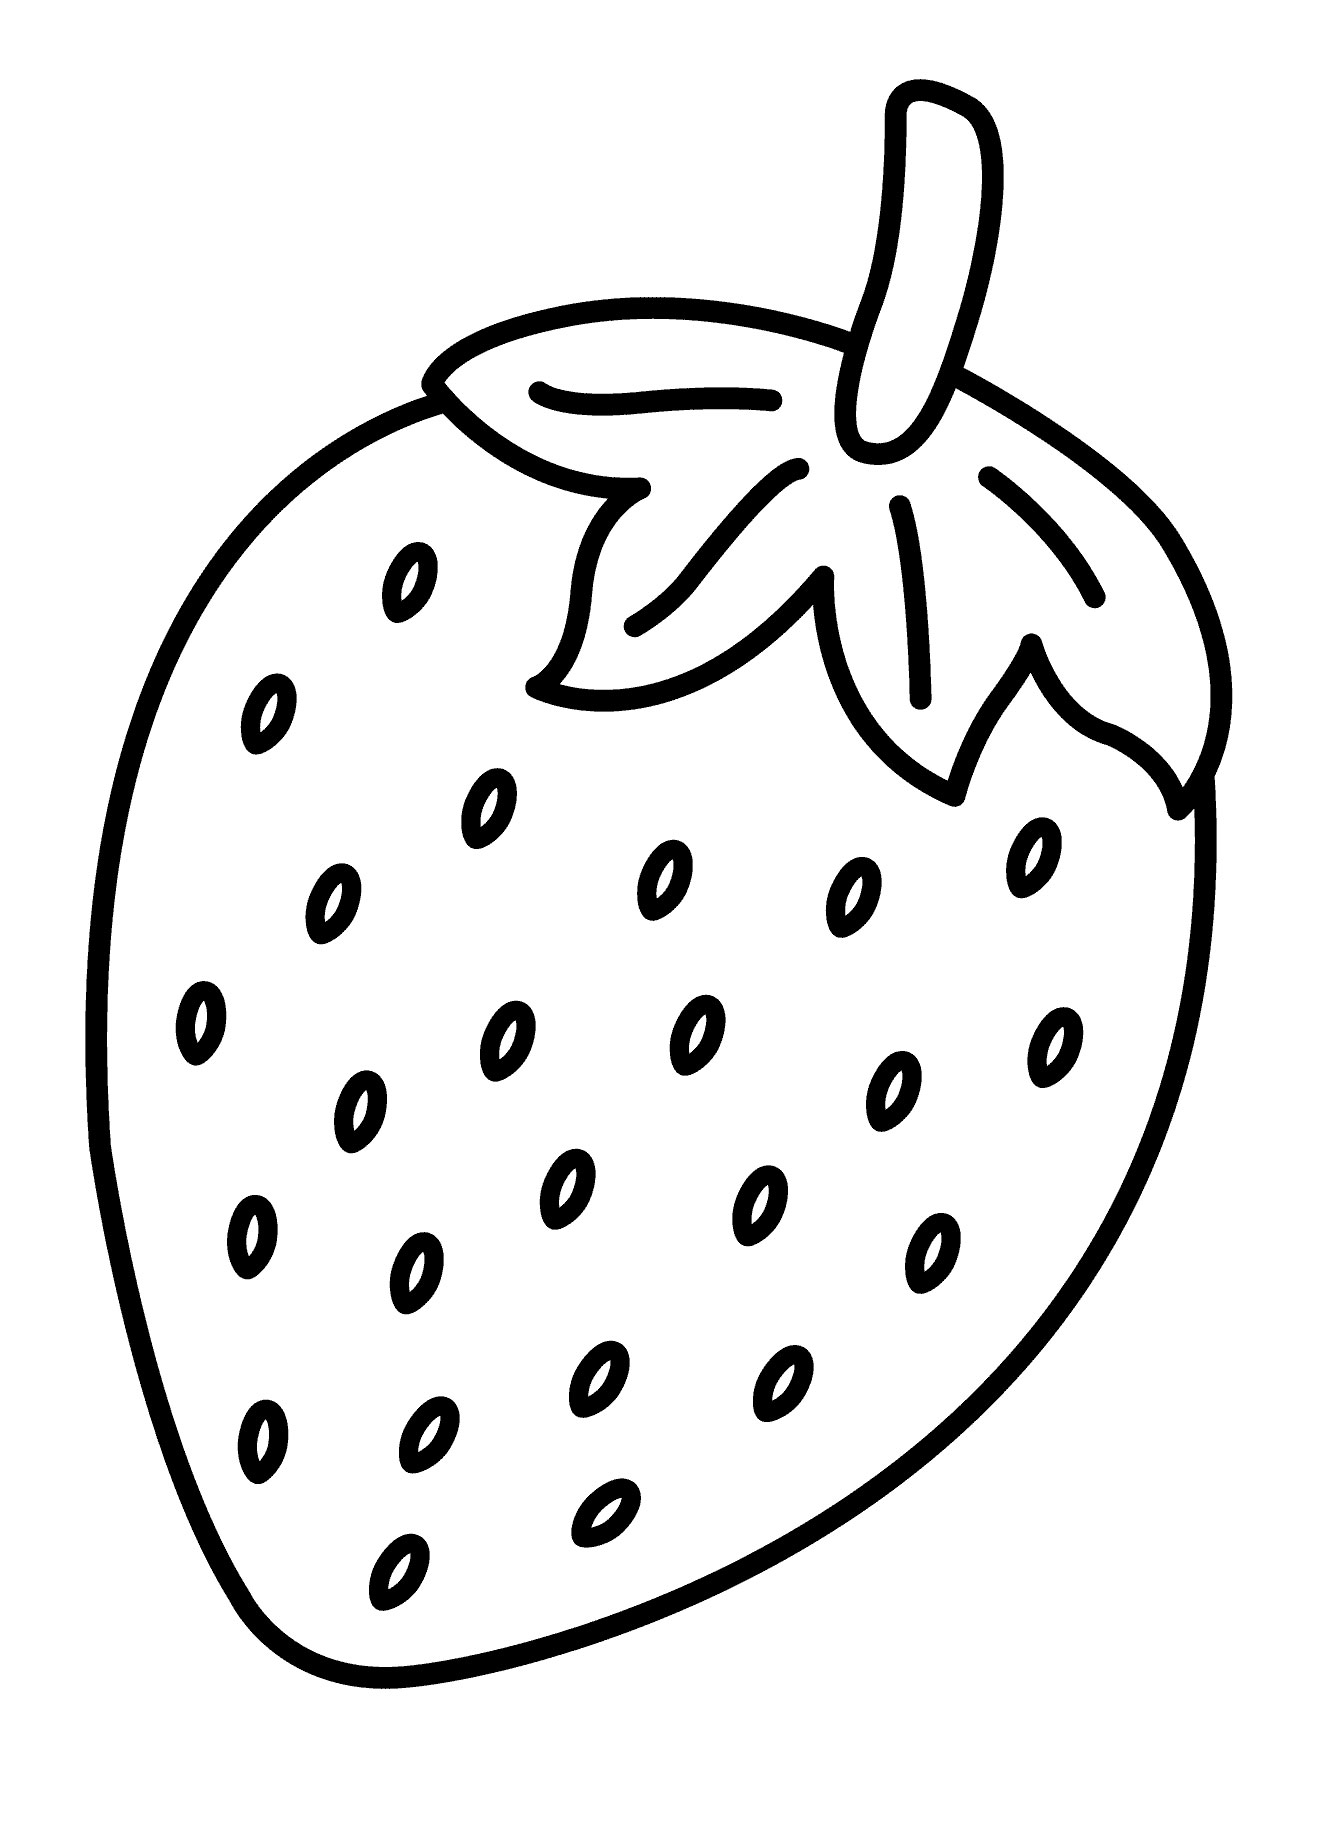 Passion Fruit Colouring Worksheet